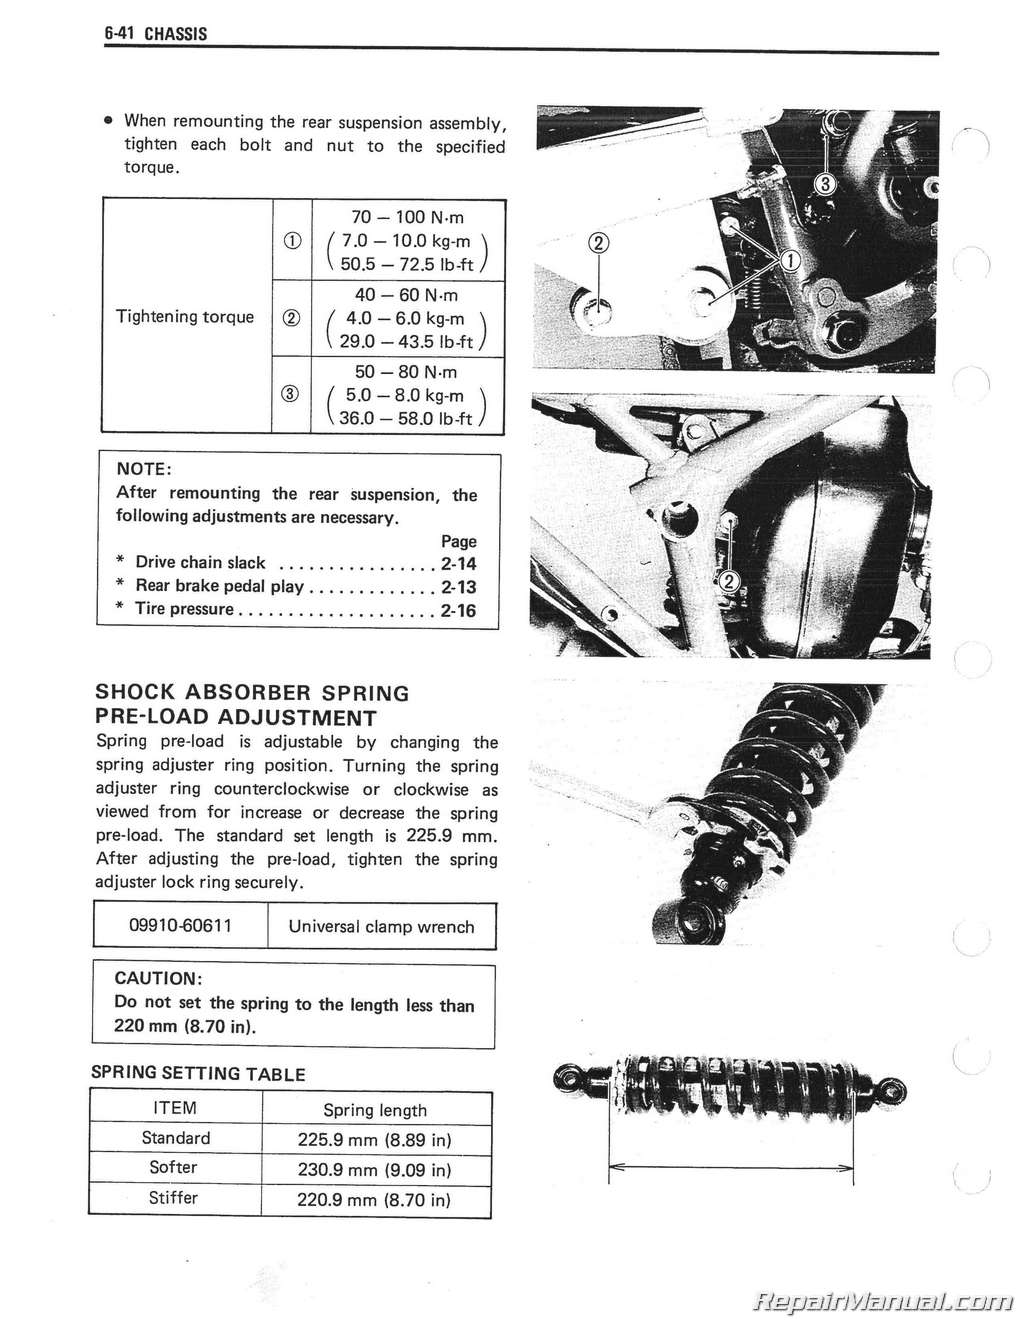 1986 1987 1988 suzuki dr125 sp125 motorcycle service manual rh repairmanual com suzuki dr 125 service manual free suzuki dr 125 service manual pdf